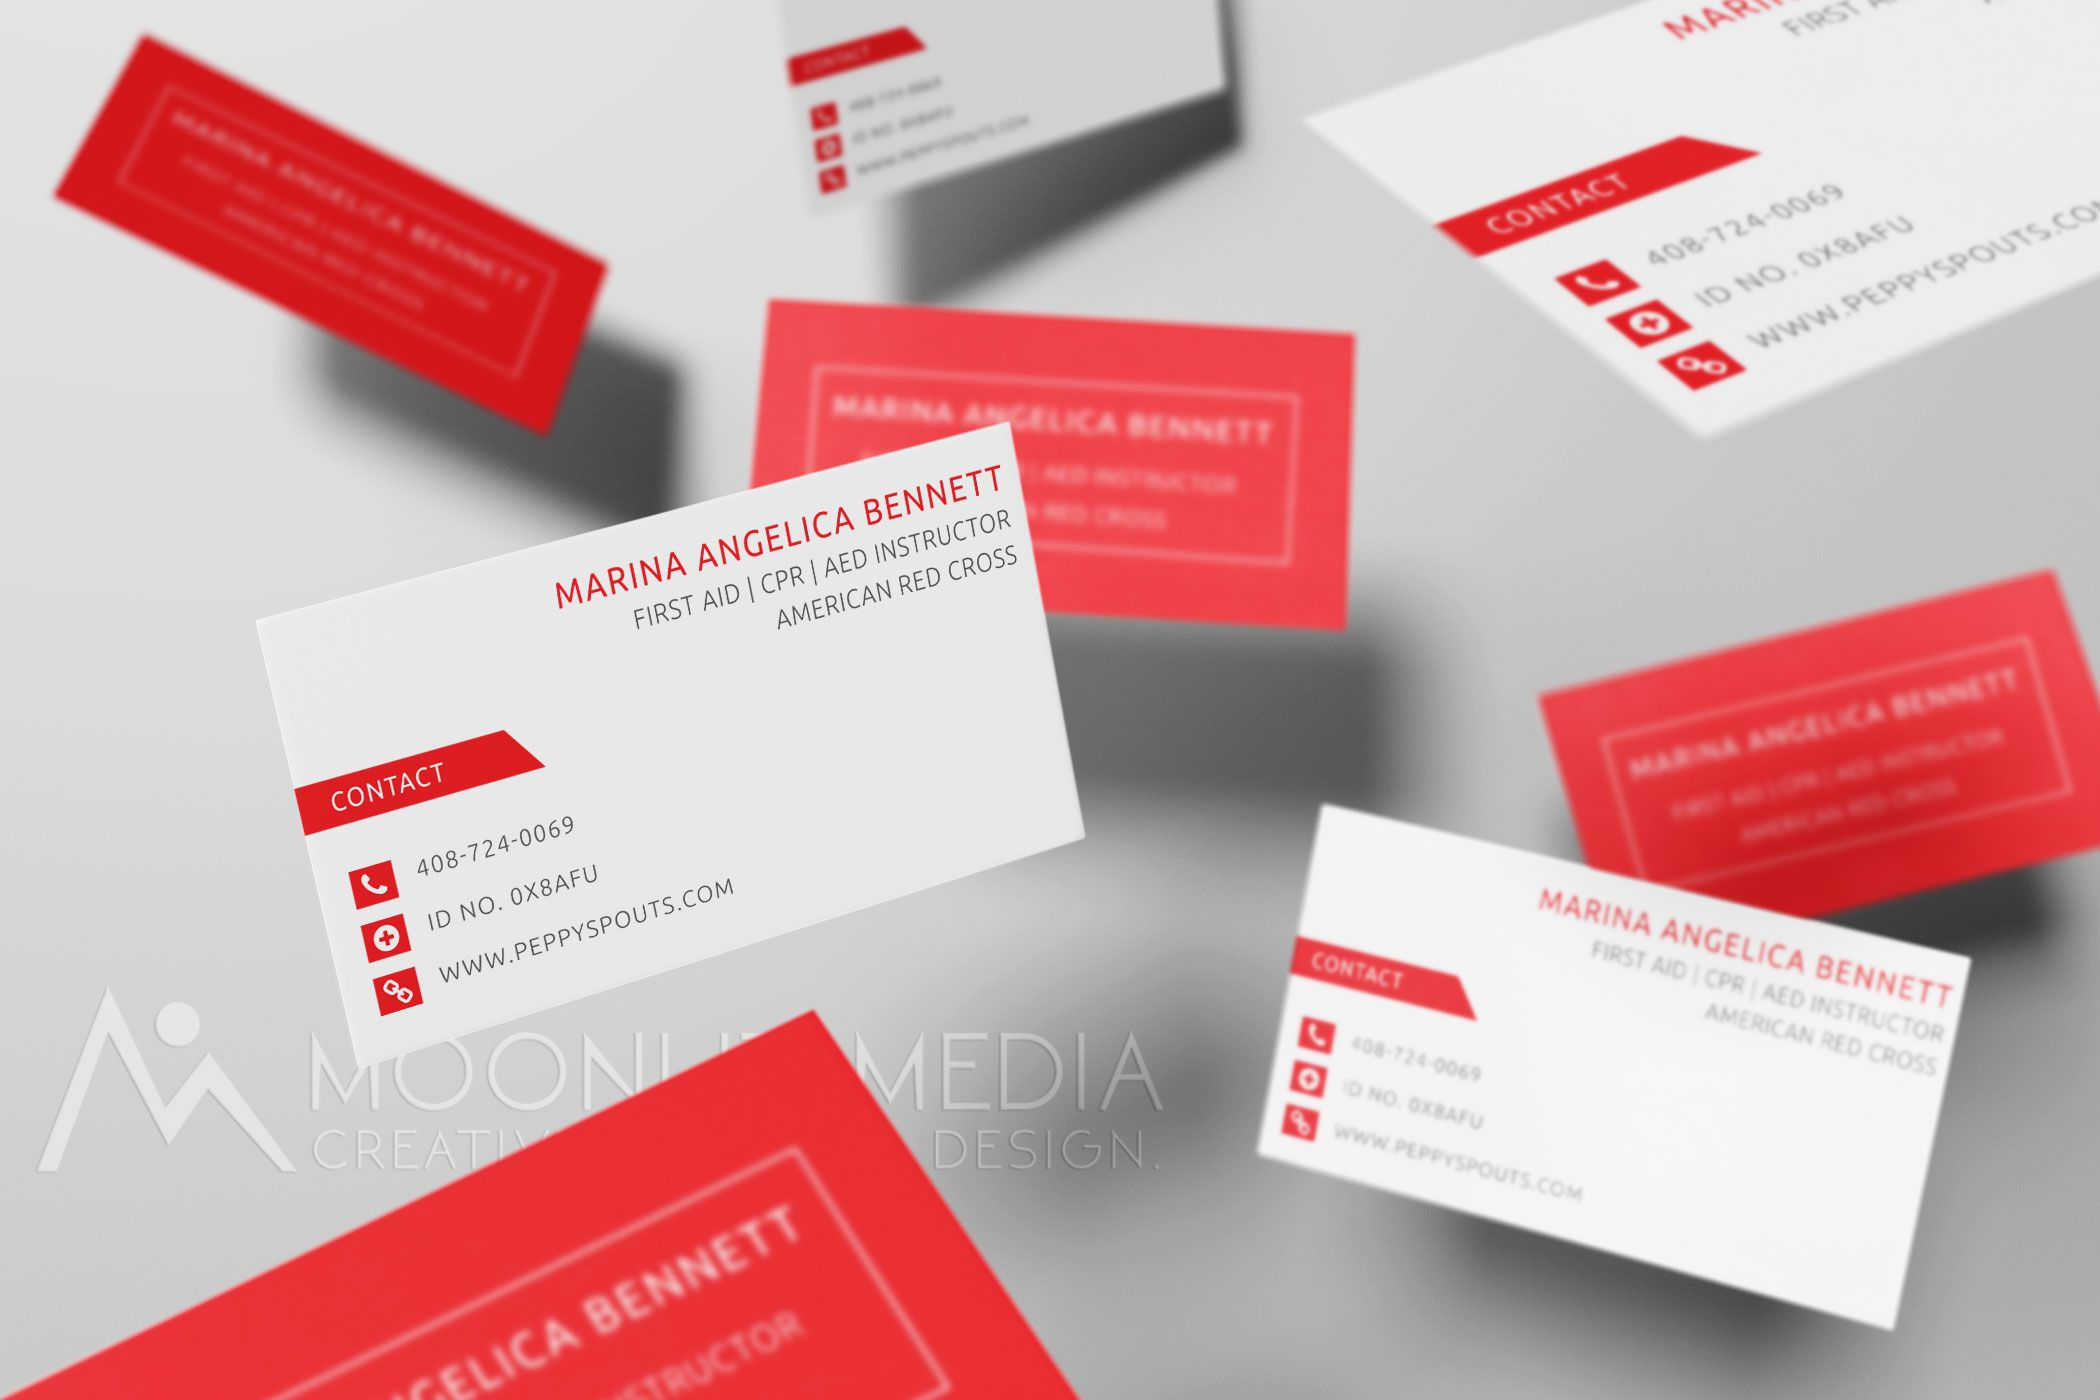 Silk business cards for an redcross certified cpr instructor silk business cards for an redcross certified cpr instructor moonlitmedia xflitez Image collections